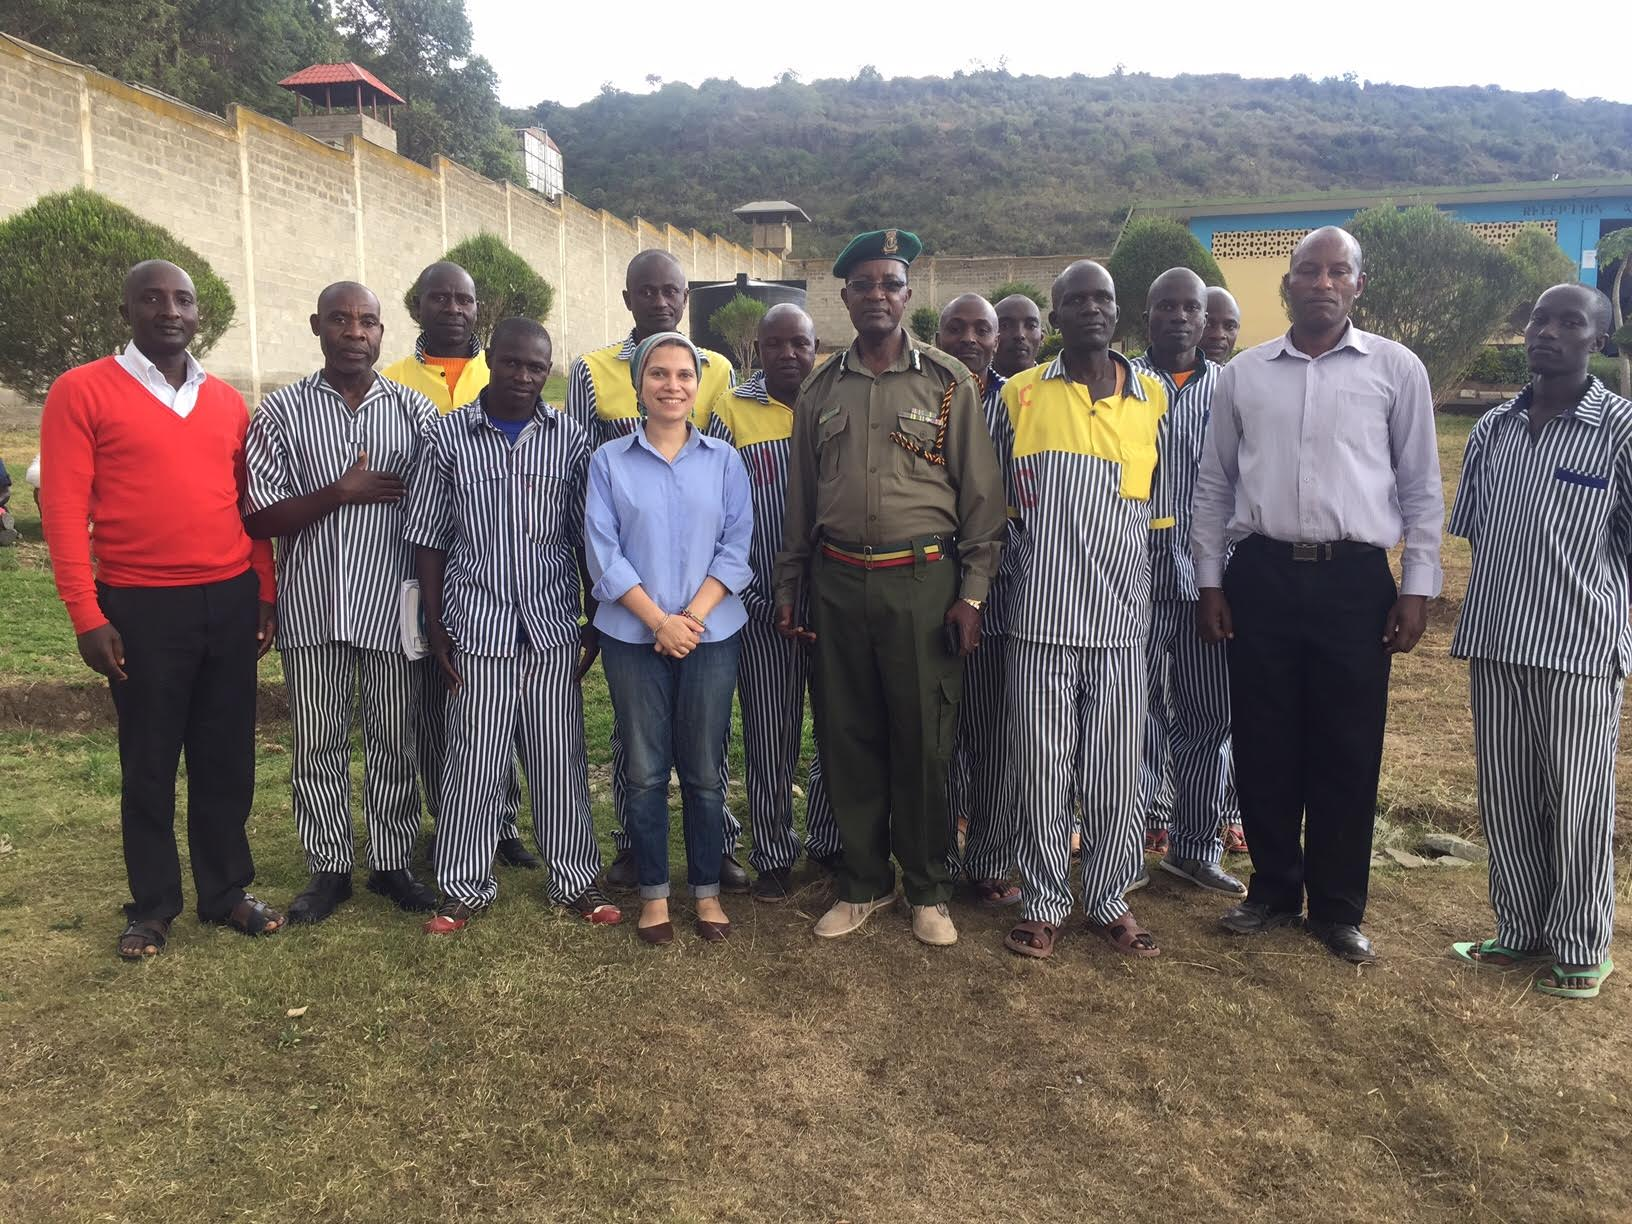 I made 44 friends in Kenya's prisons and they taught me more than I taught them